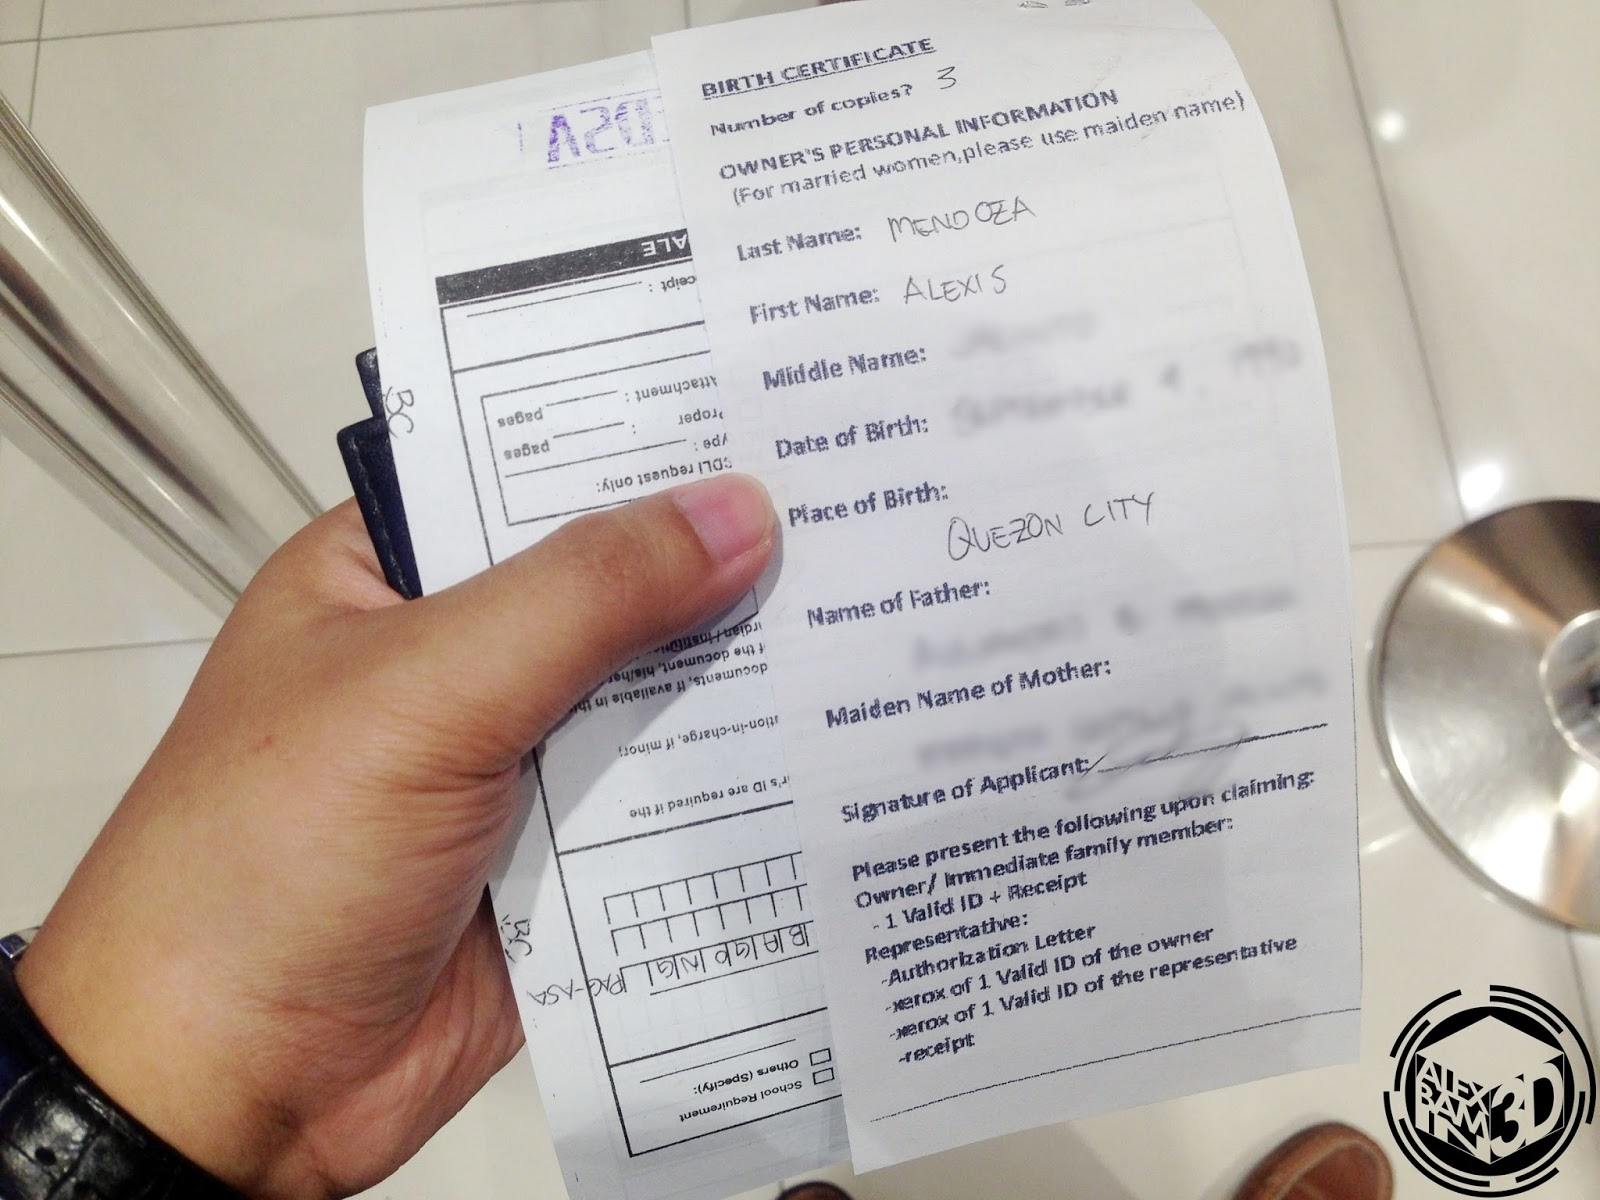 Getting your nso birth certificate at sm business center alexbamin3d payment for your birth certificate copy is 140php each same as when you request directly at nso sm charges an additional 20php aiddatafo Image collections